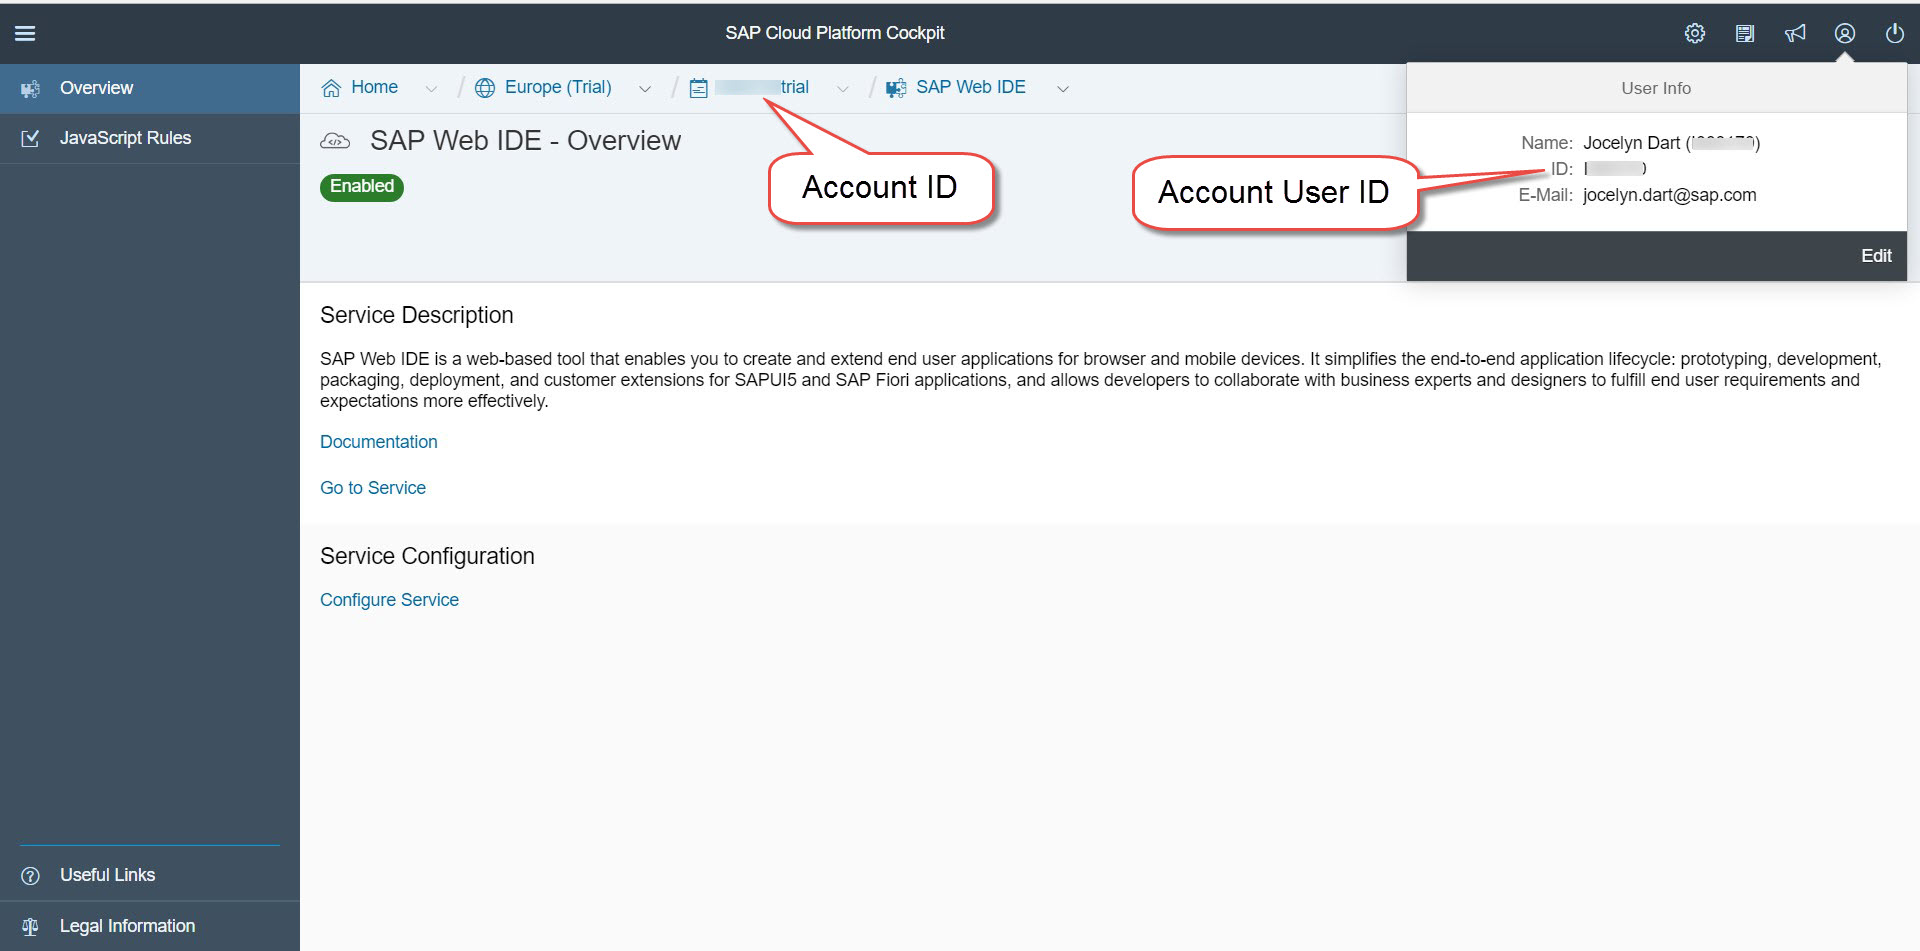 Cloud Platform Account Overview showing Account ID in the header and Account User ID in the User details